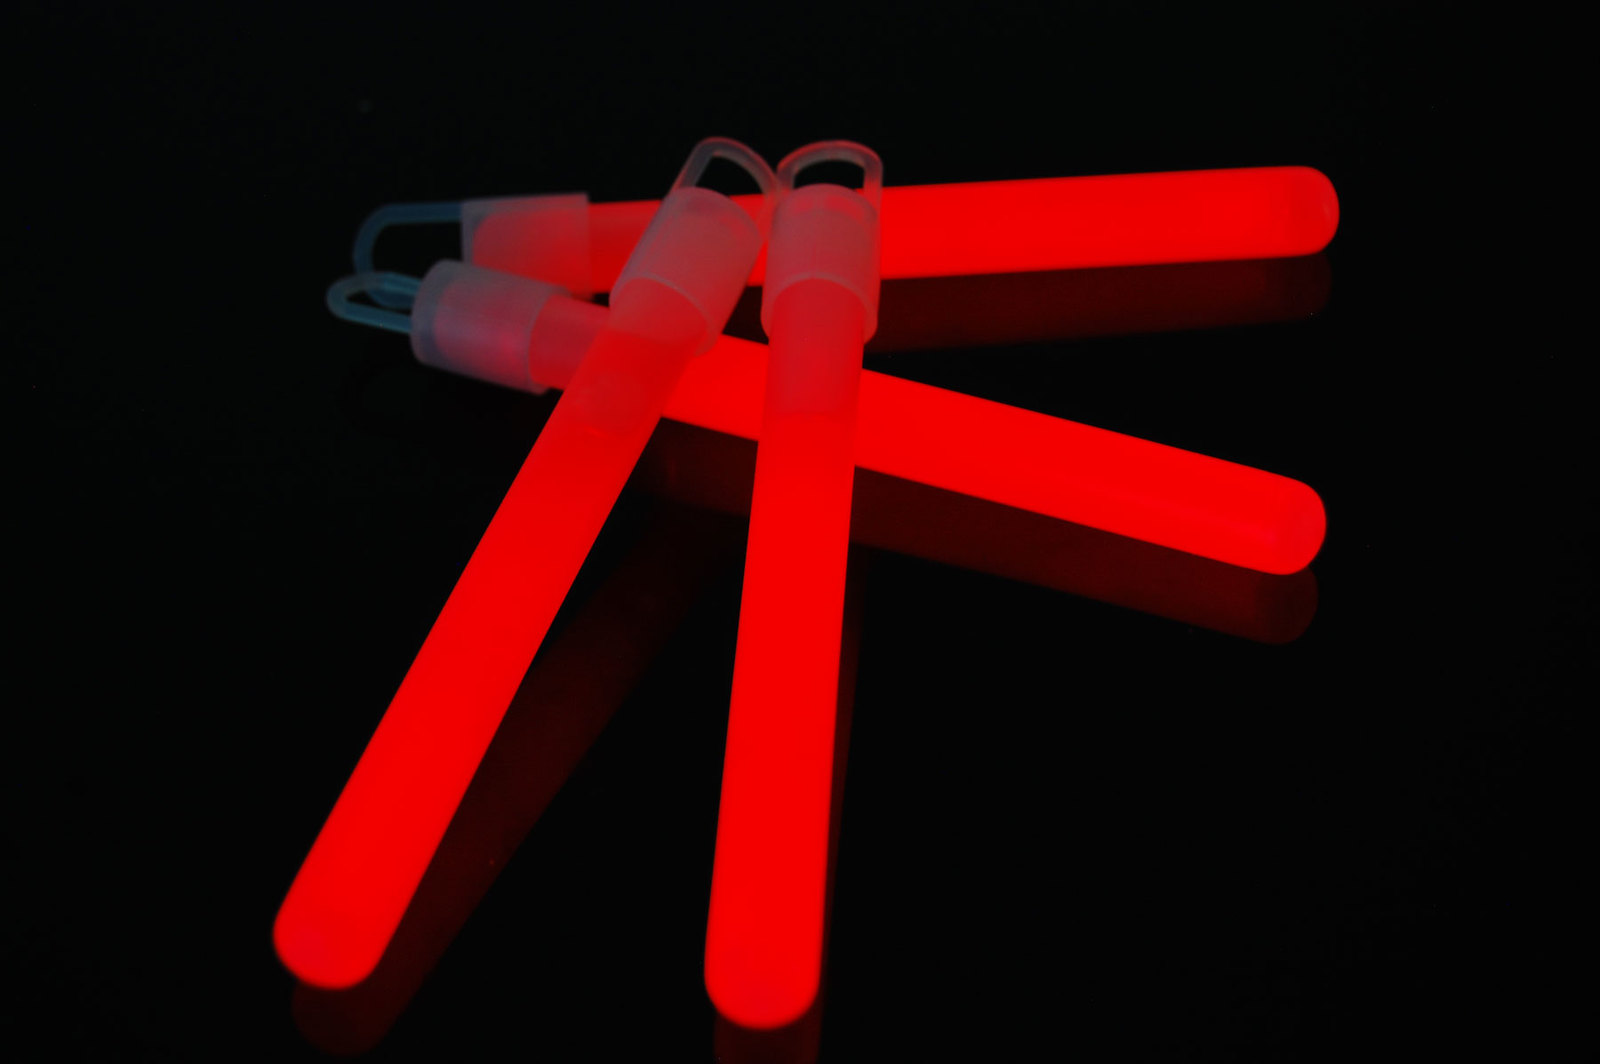 4 inch Premium Red Glow Sticks with Lanyards- 25 Count  image 2